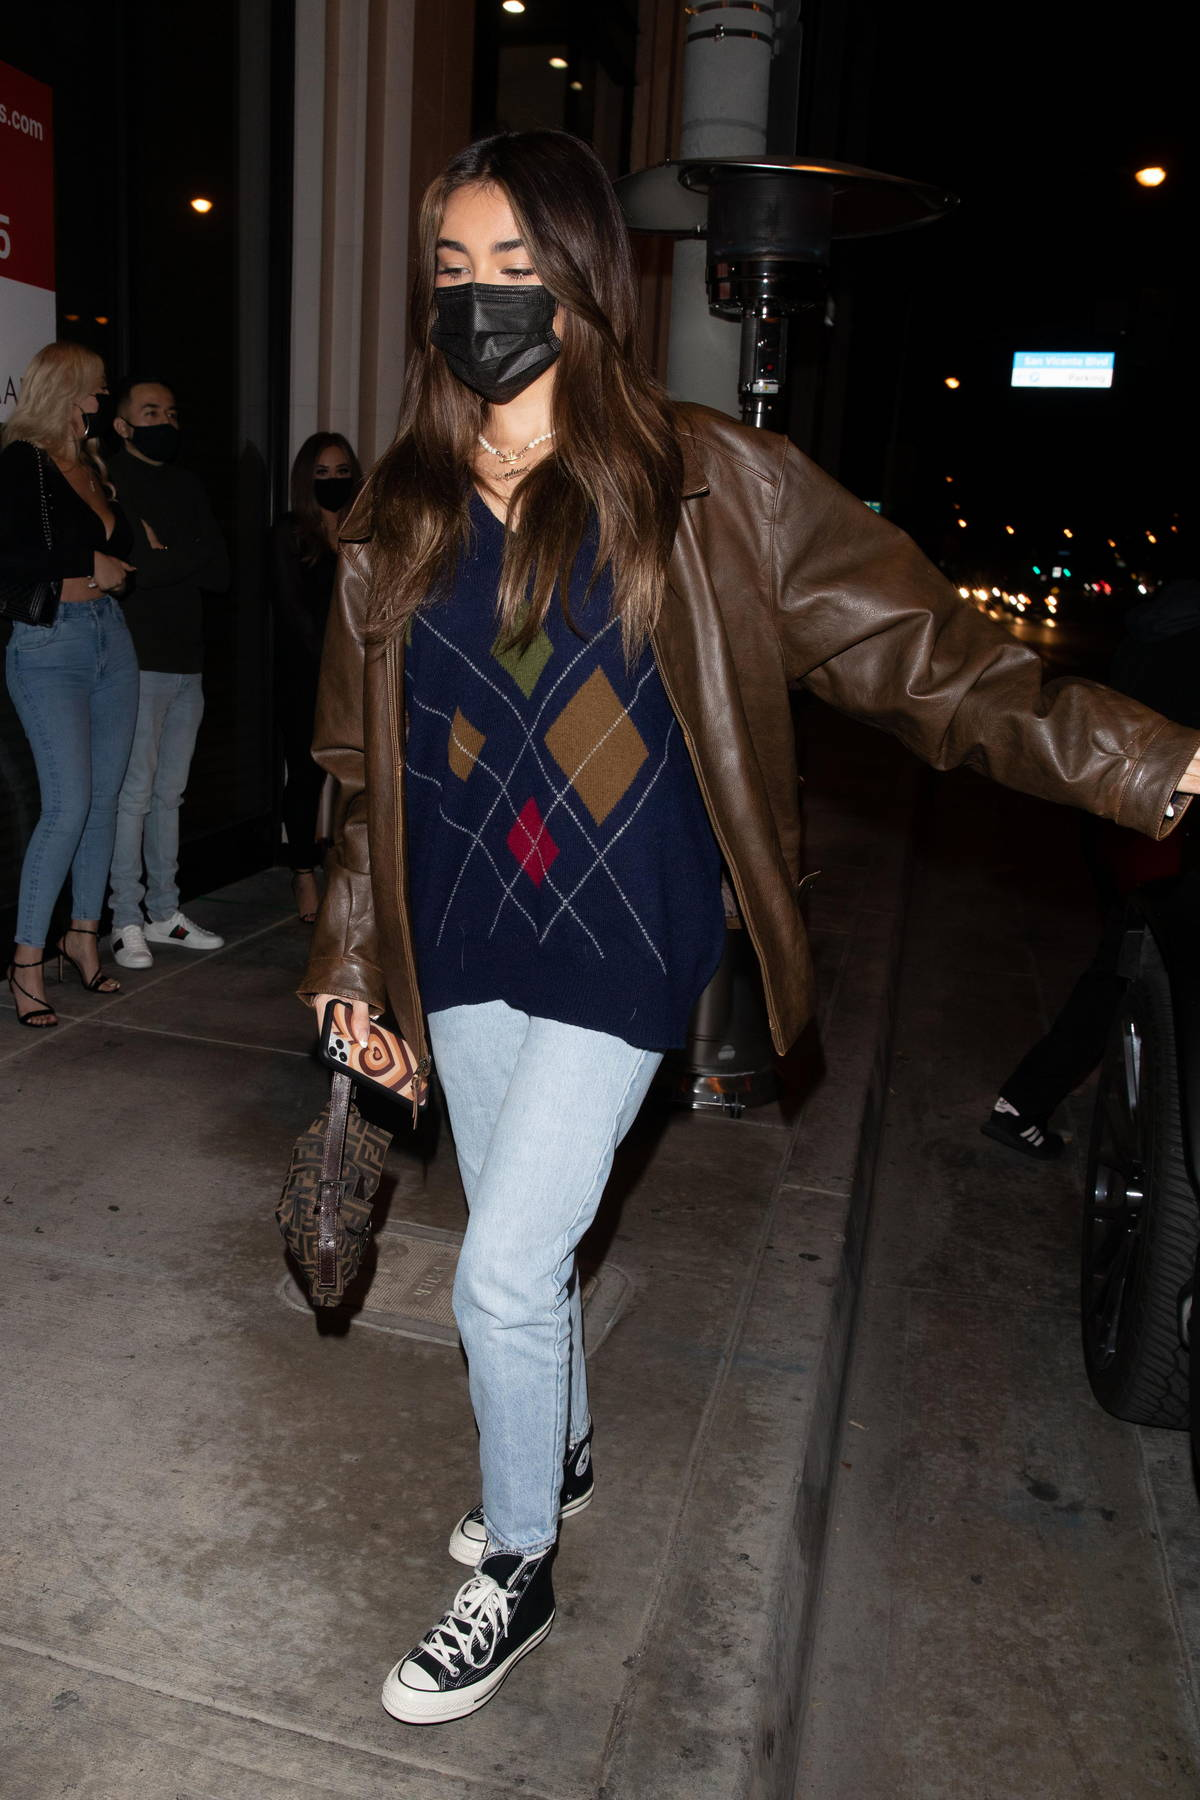 Madison Beer sports a brown leather jacket with a sweater as she arrives for dinner at Catch LA in West Hollywood, California